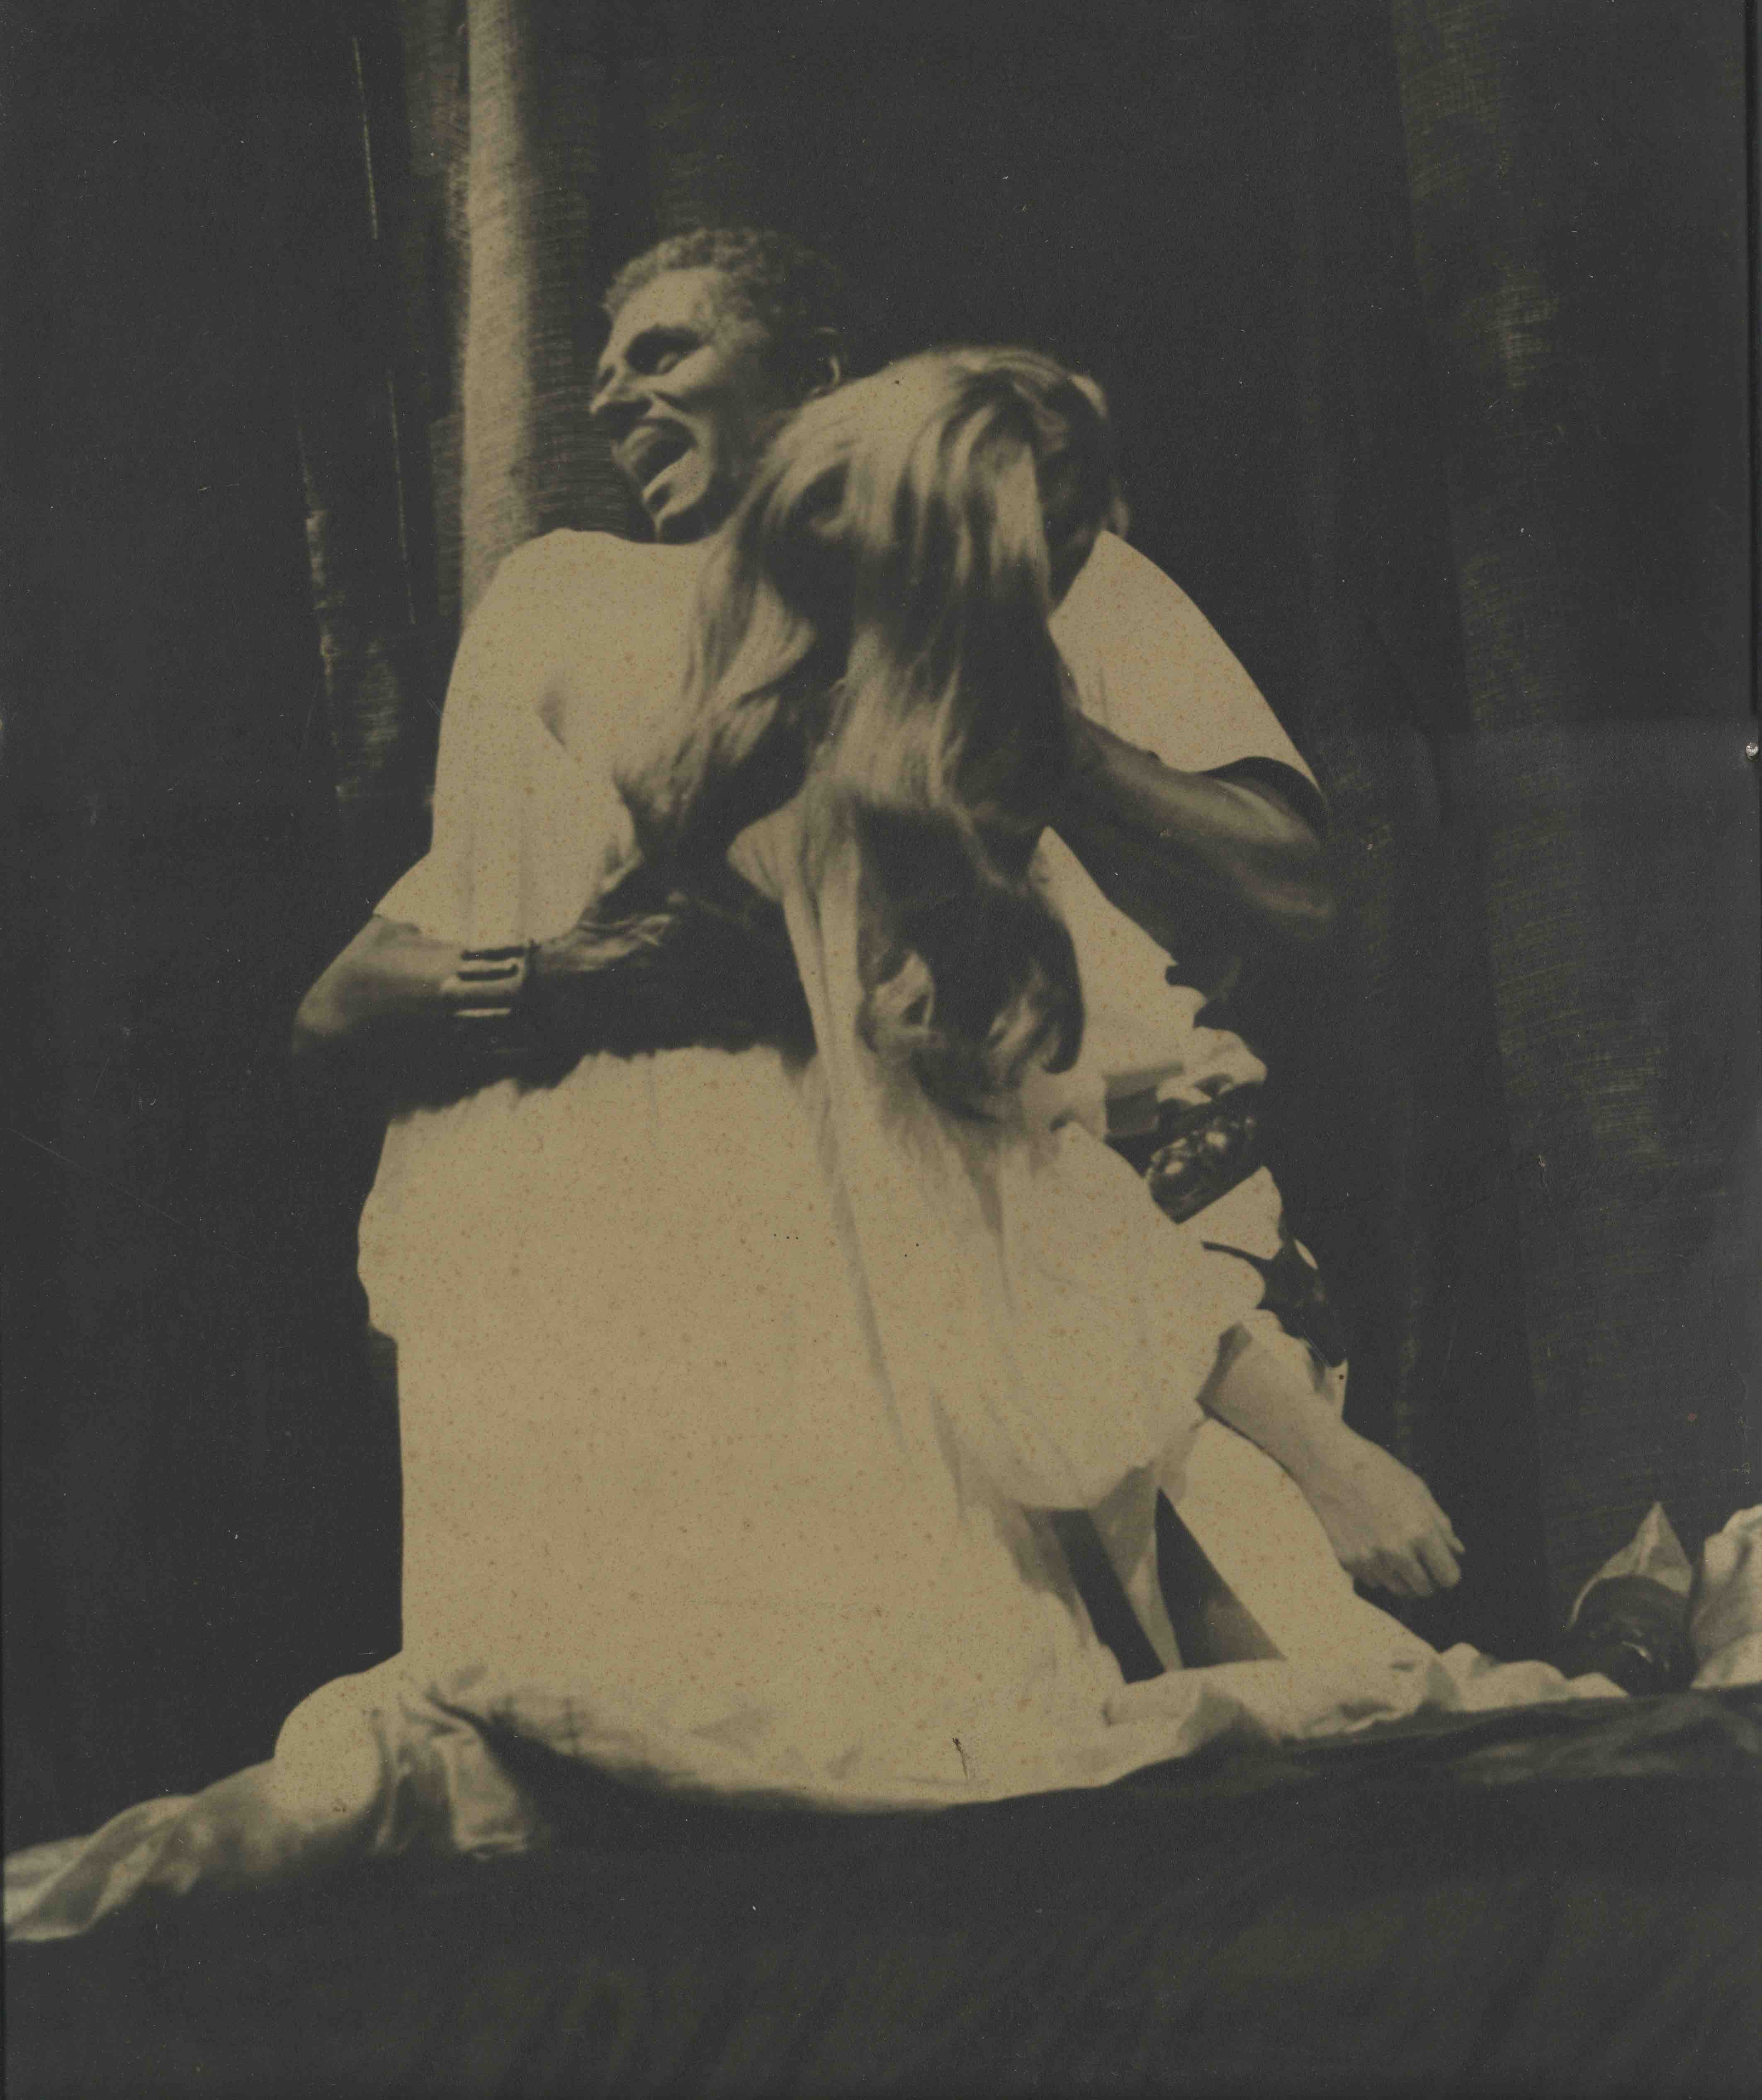 Production photograph - Othello - Laurence Olivier, Maggie Smith - Photographer unknown - 1964 - printed on board - H47W39